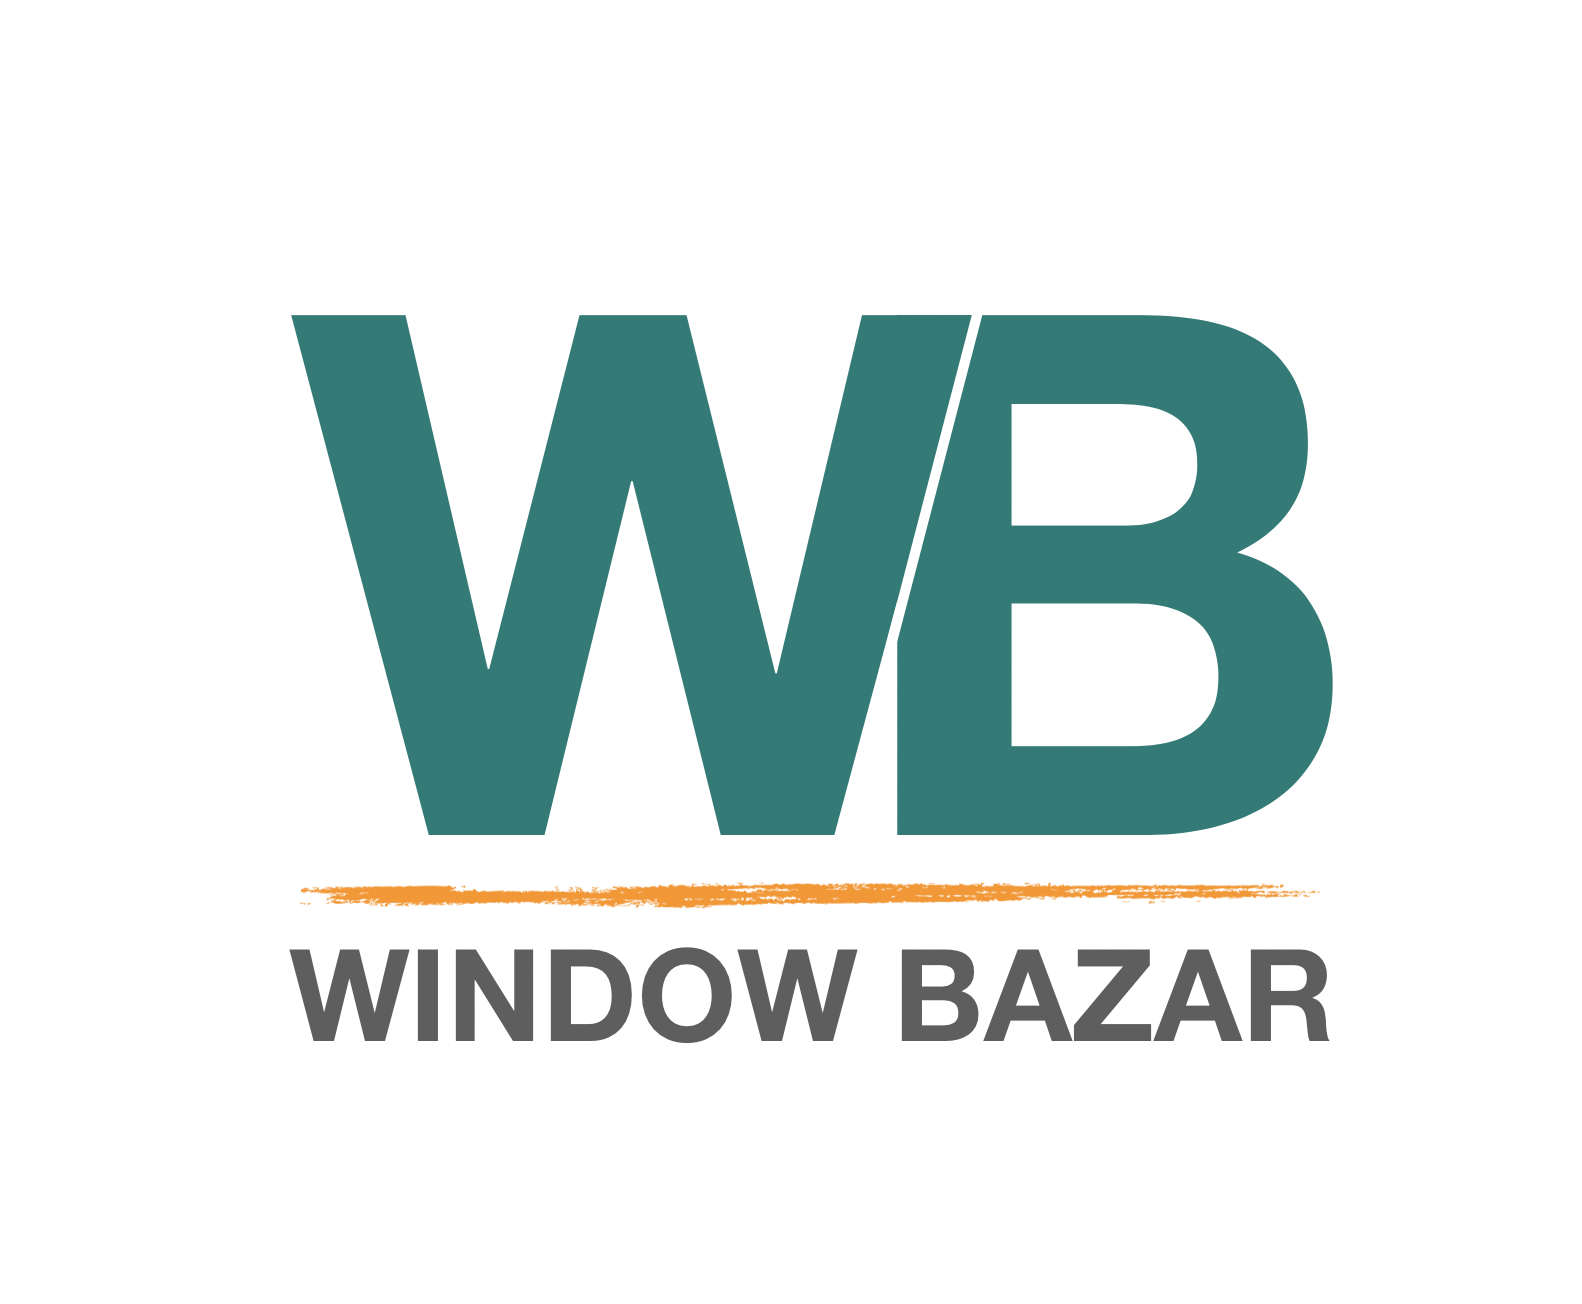 window bazaar